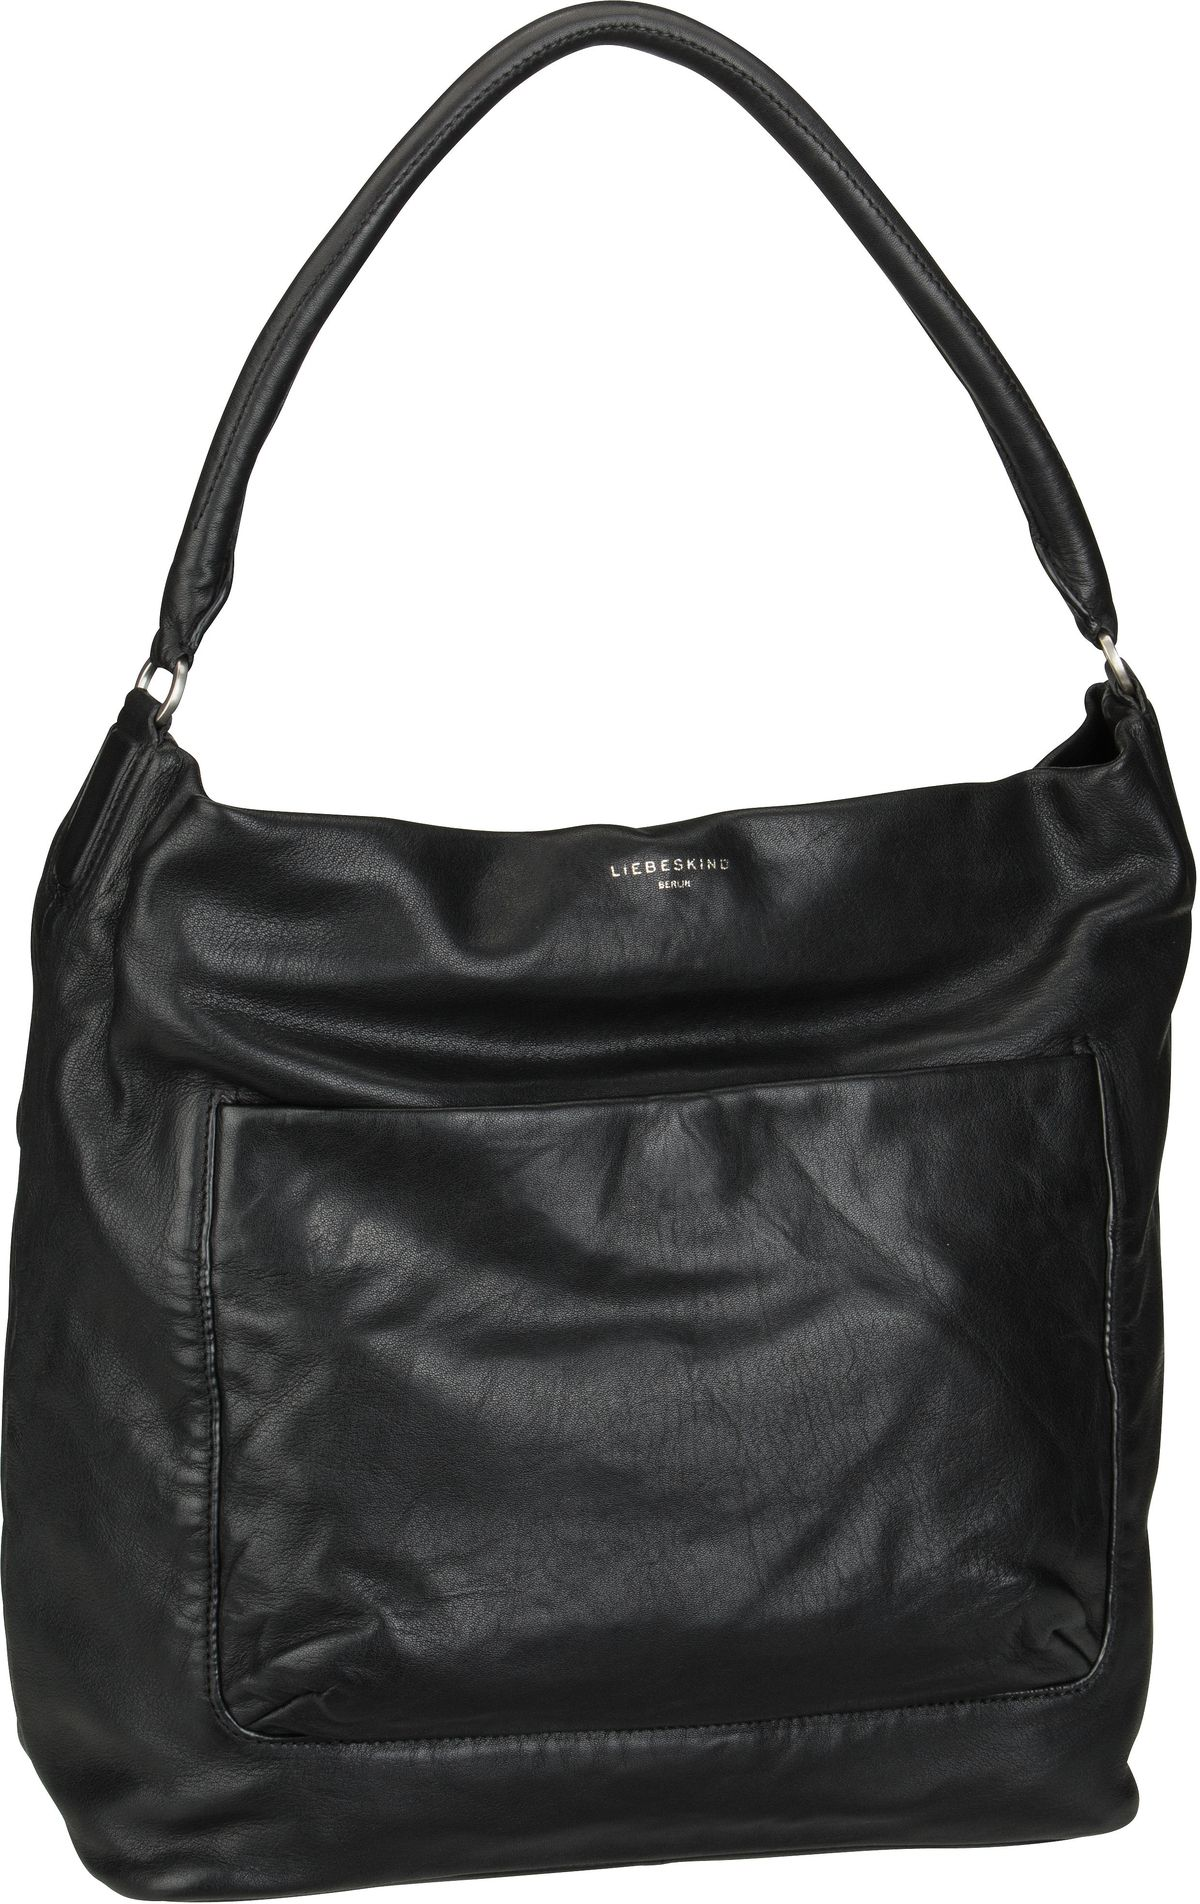 Berlin Handtasche Ever Hobo L Black